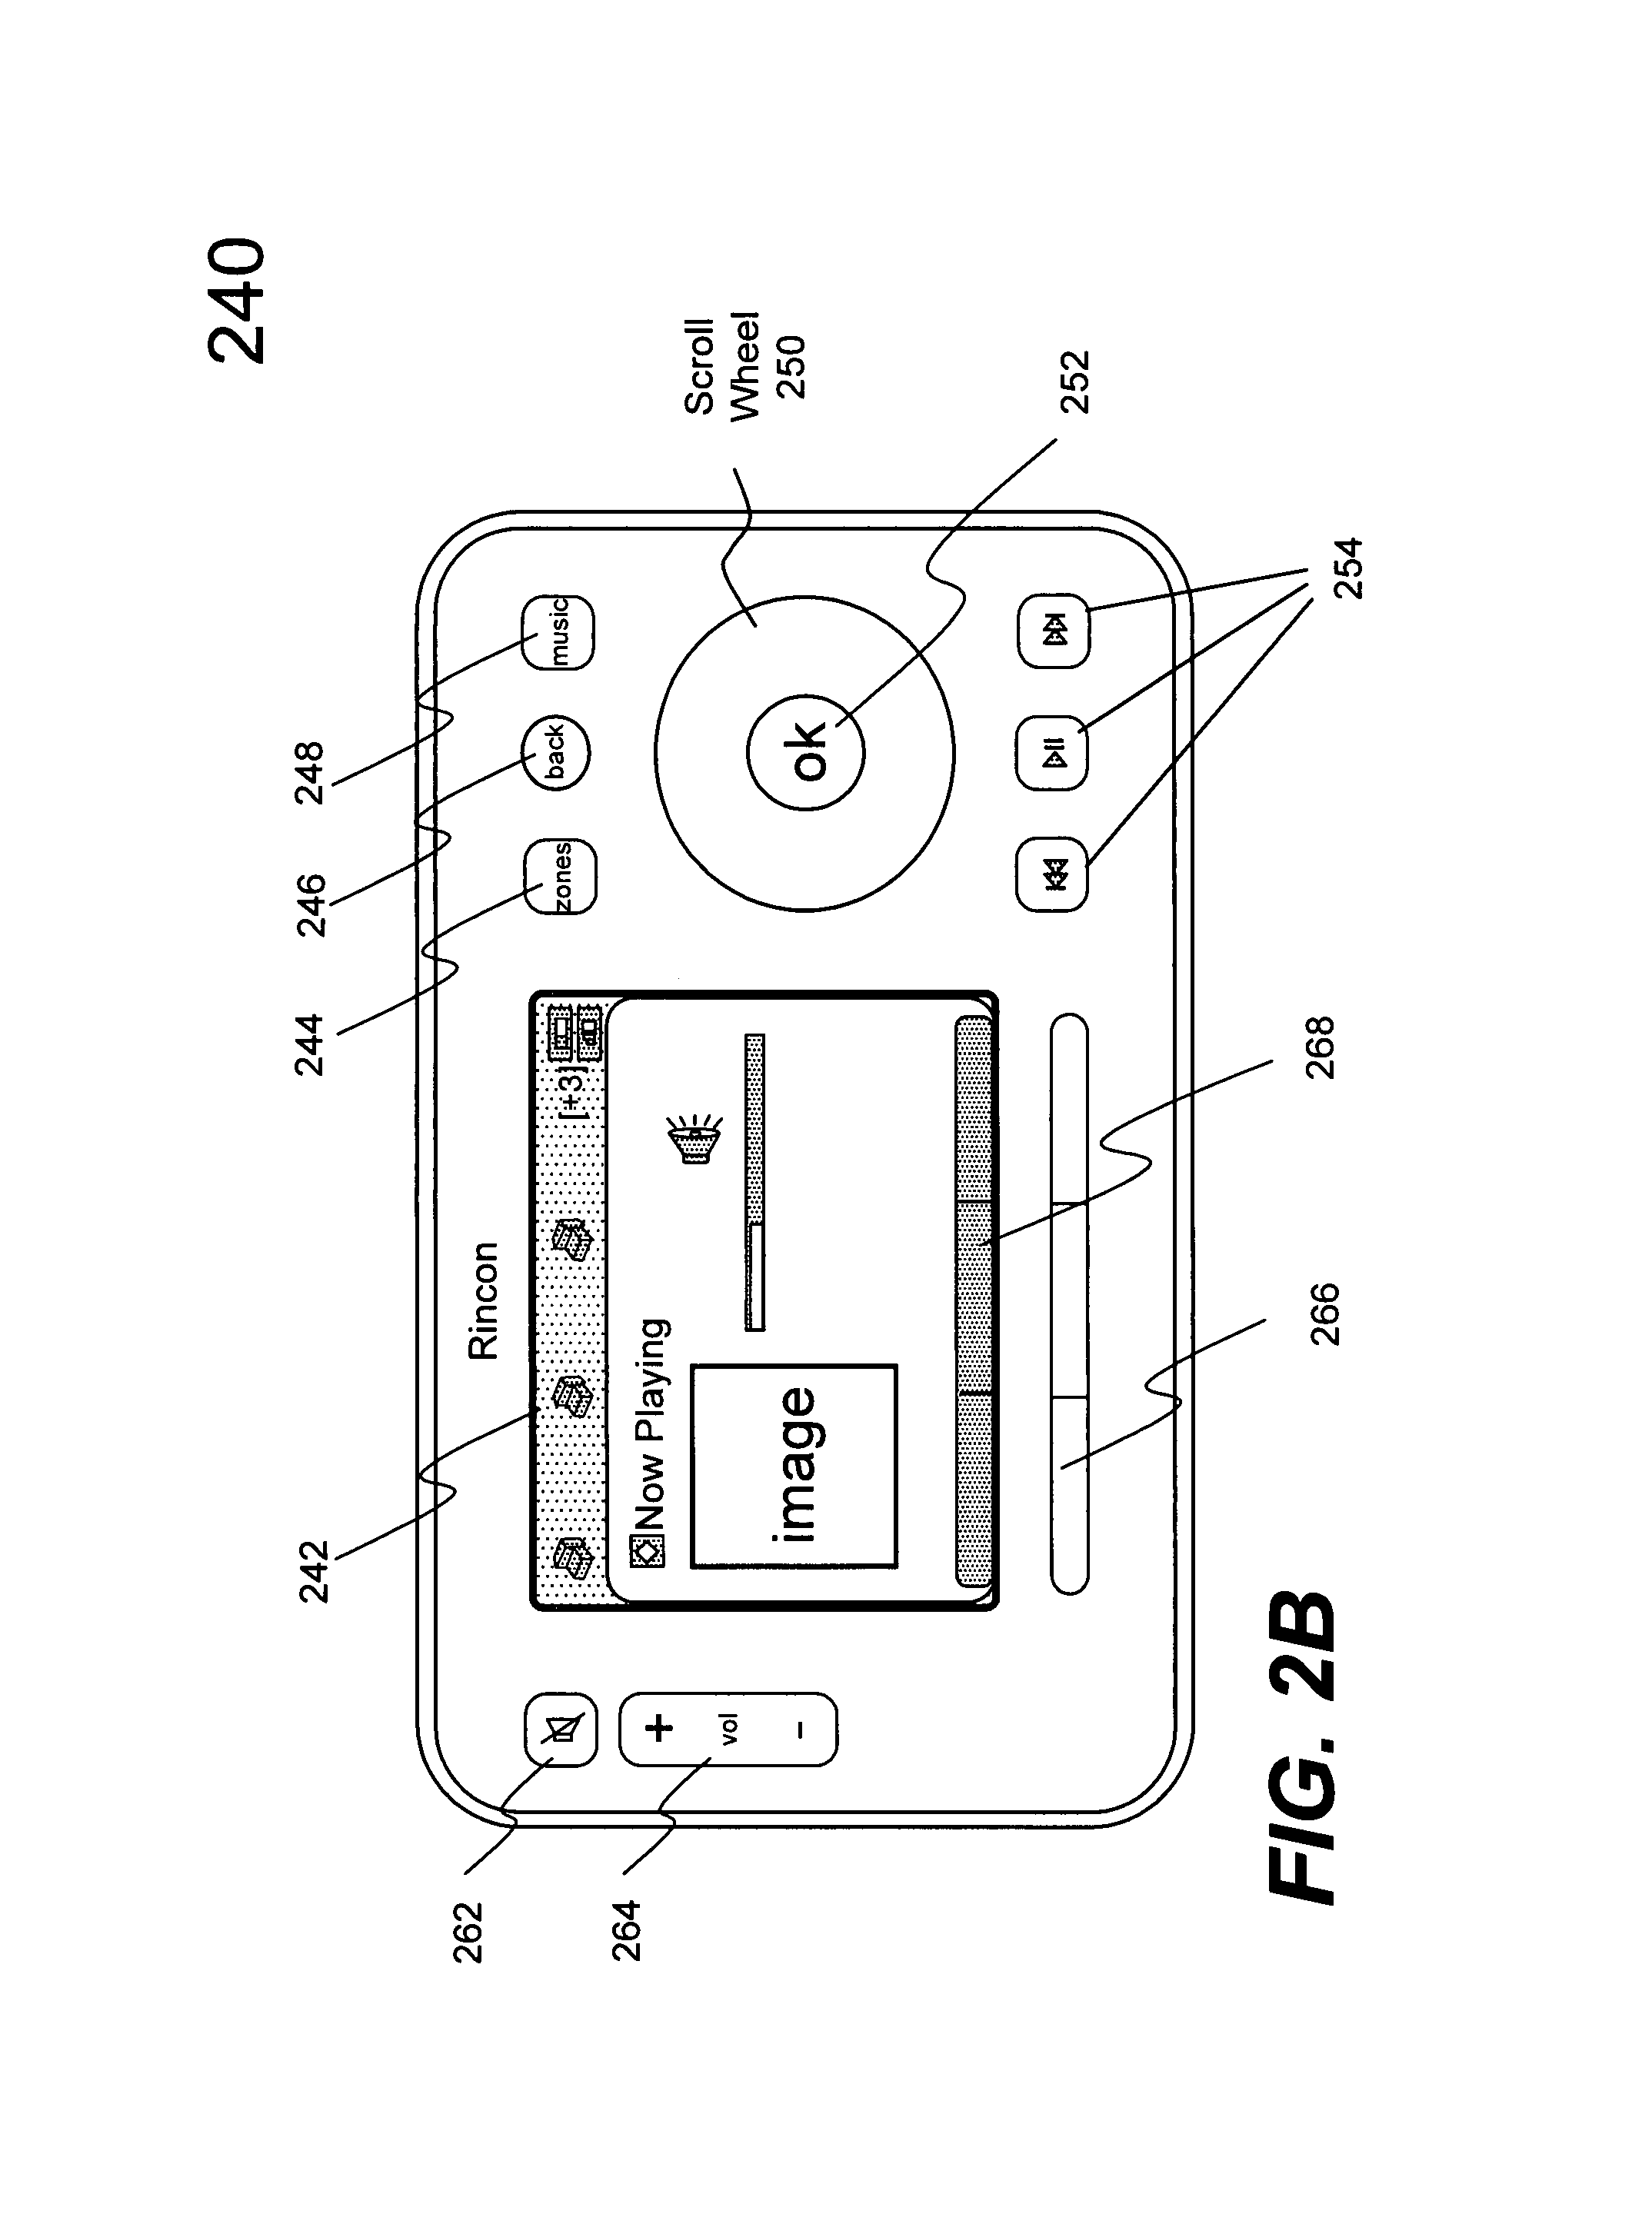 Patent Us8483853 Controlling And Manipulating Groupings In A Multi Sound Effectsmp3 Play Download Programmable Time Departure Circuits Drawing